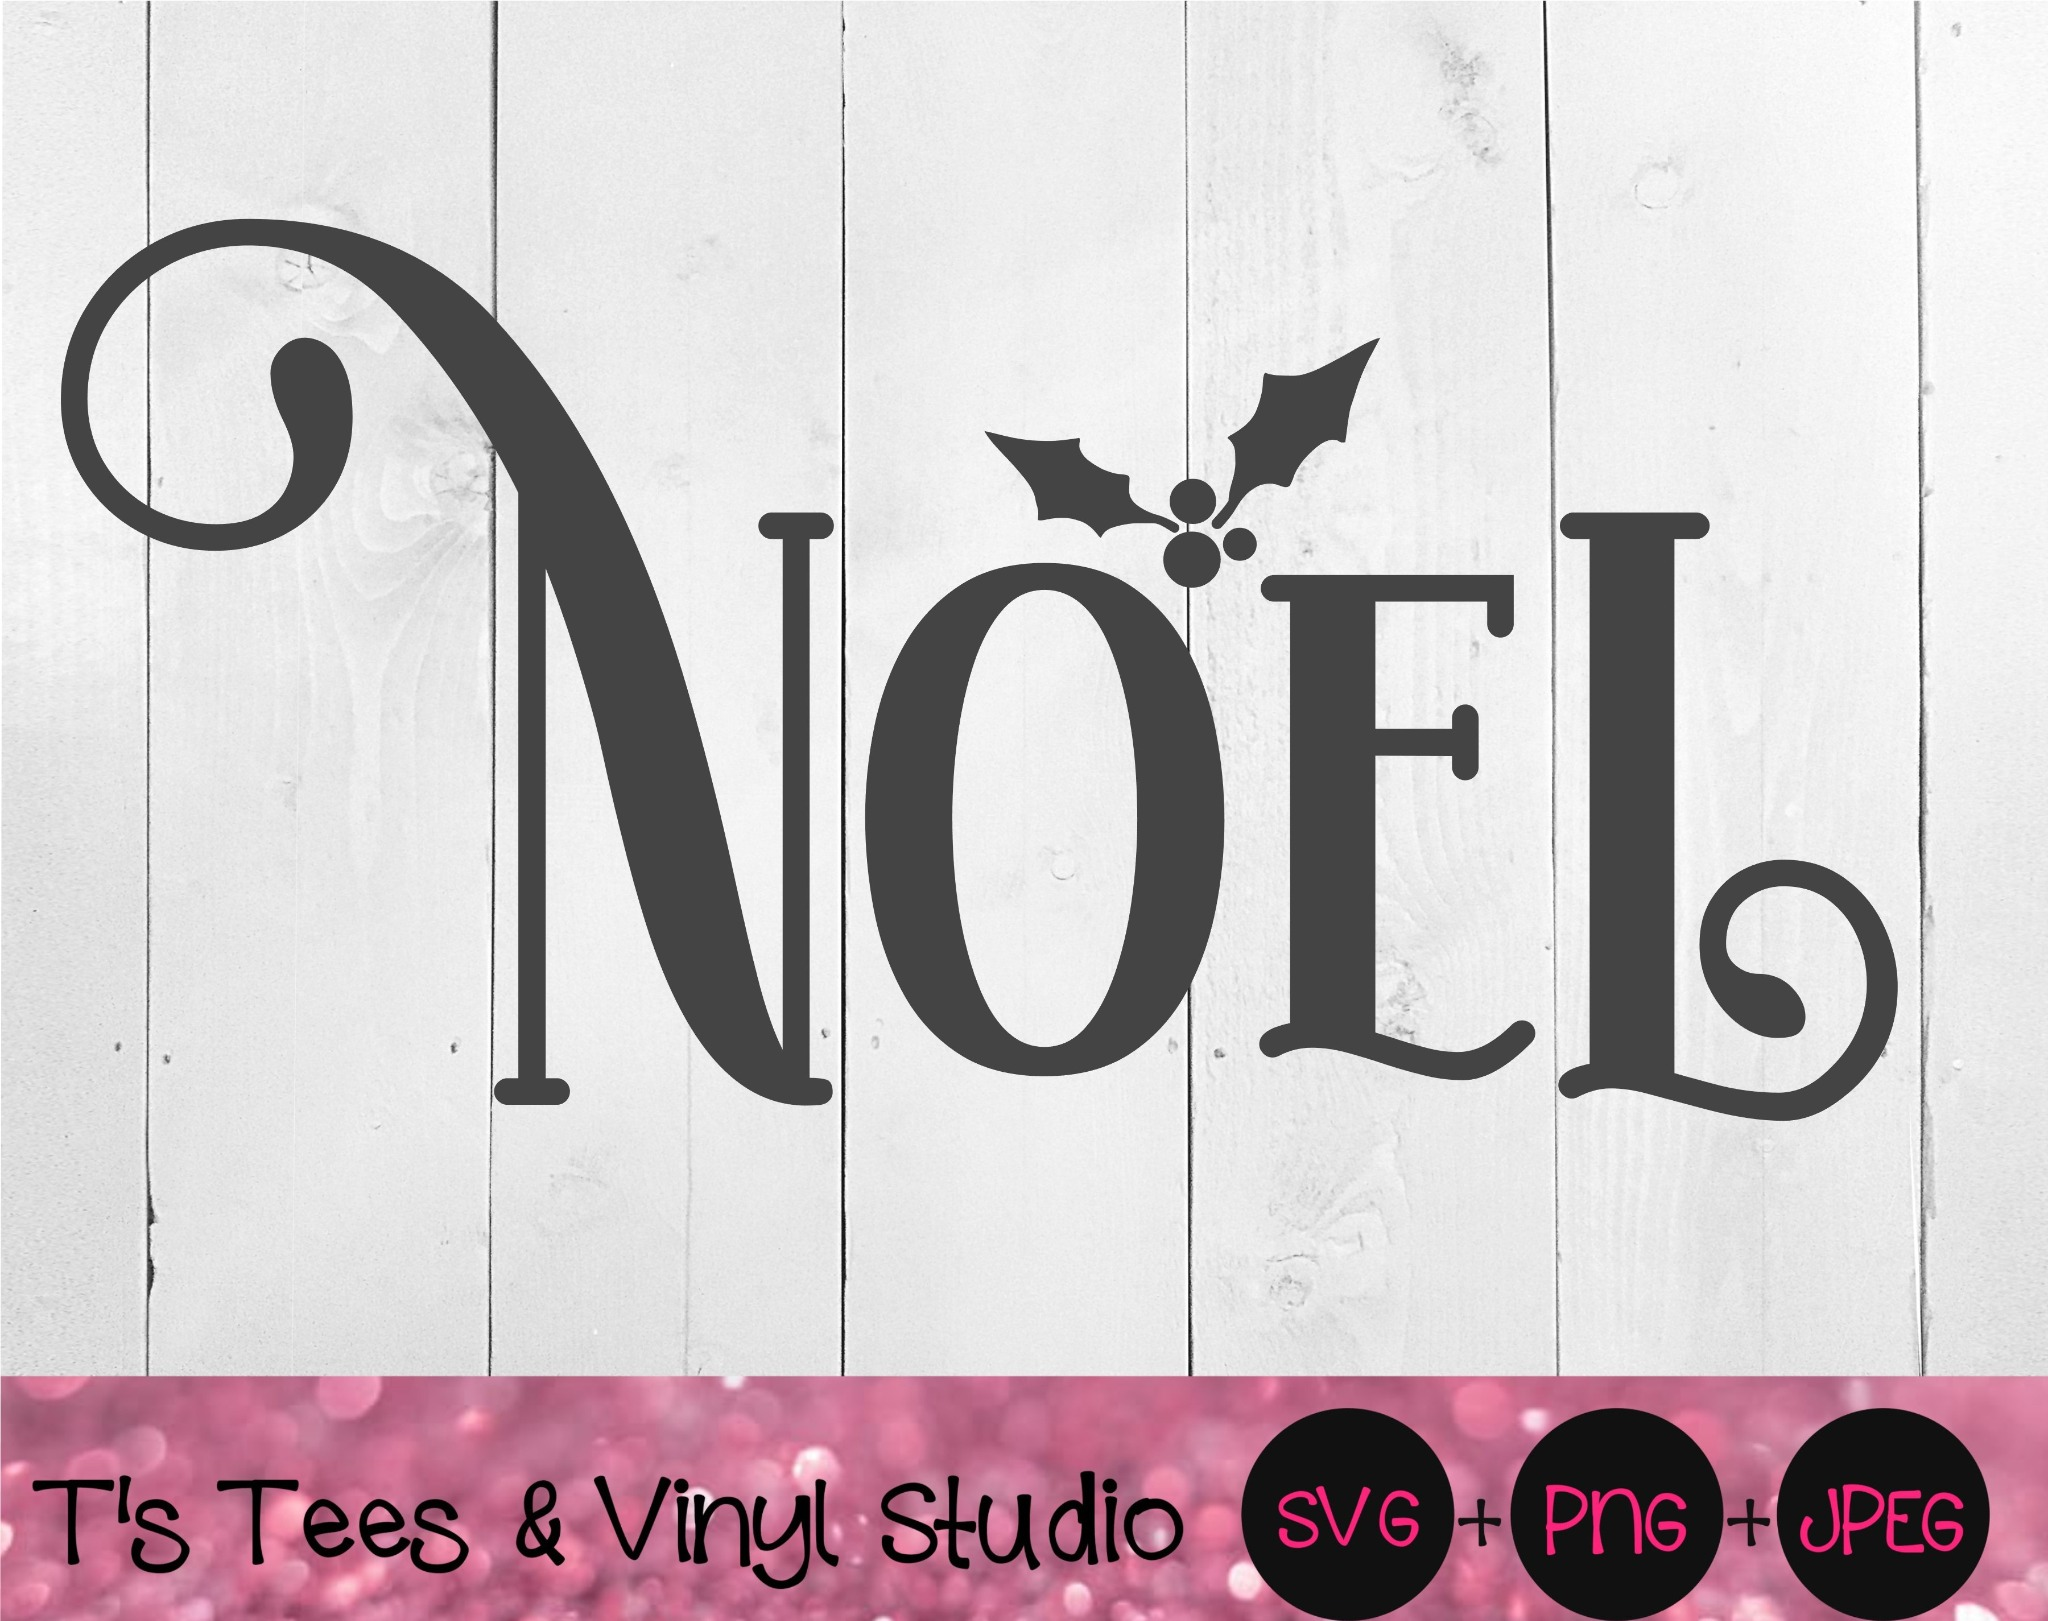 Noel Svg, Christmas Cut File, Merry Christmas, Holiday Cheer, Christmastime, Holly Berry, Digital Do